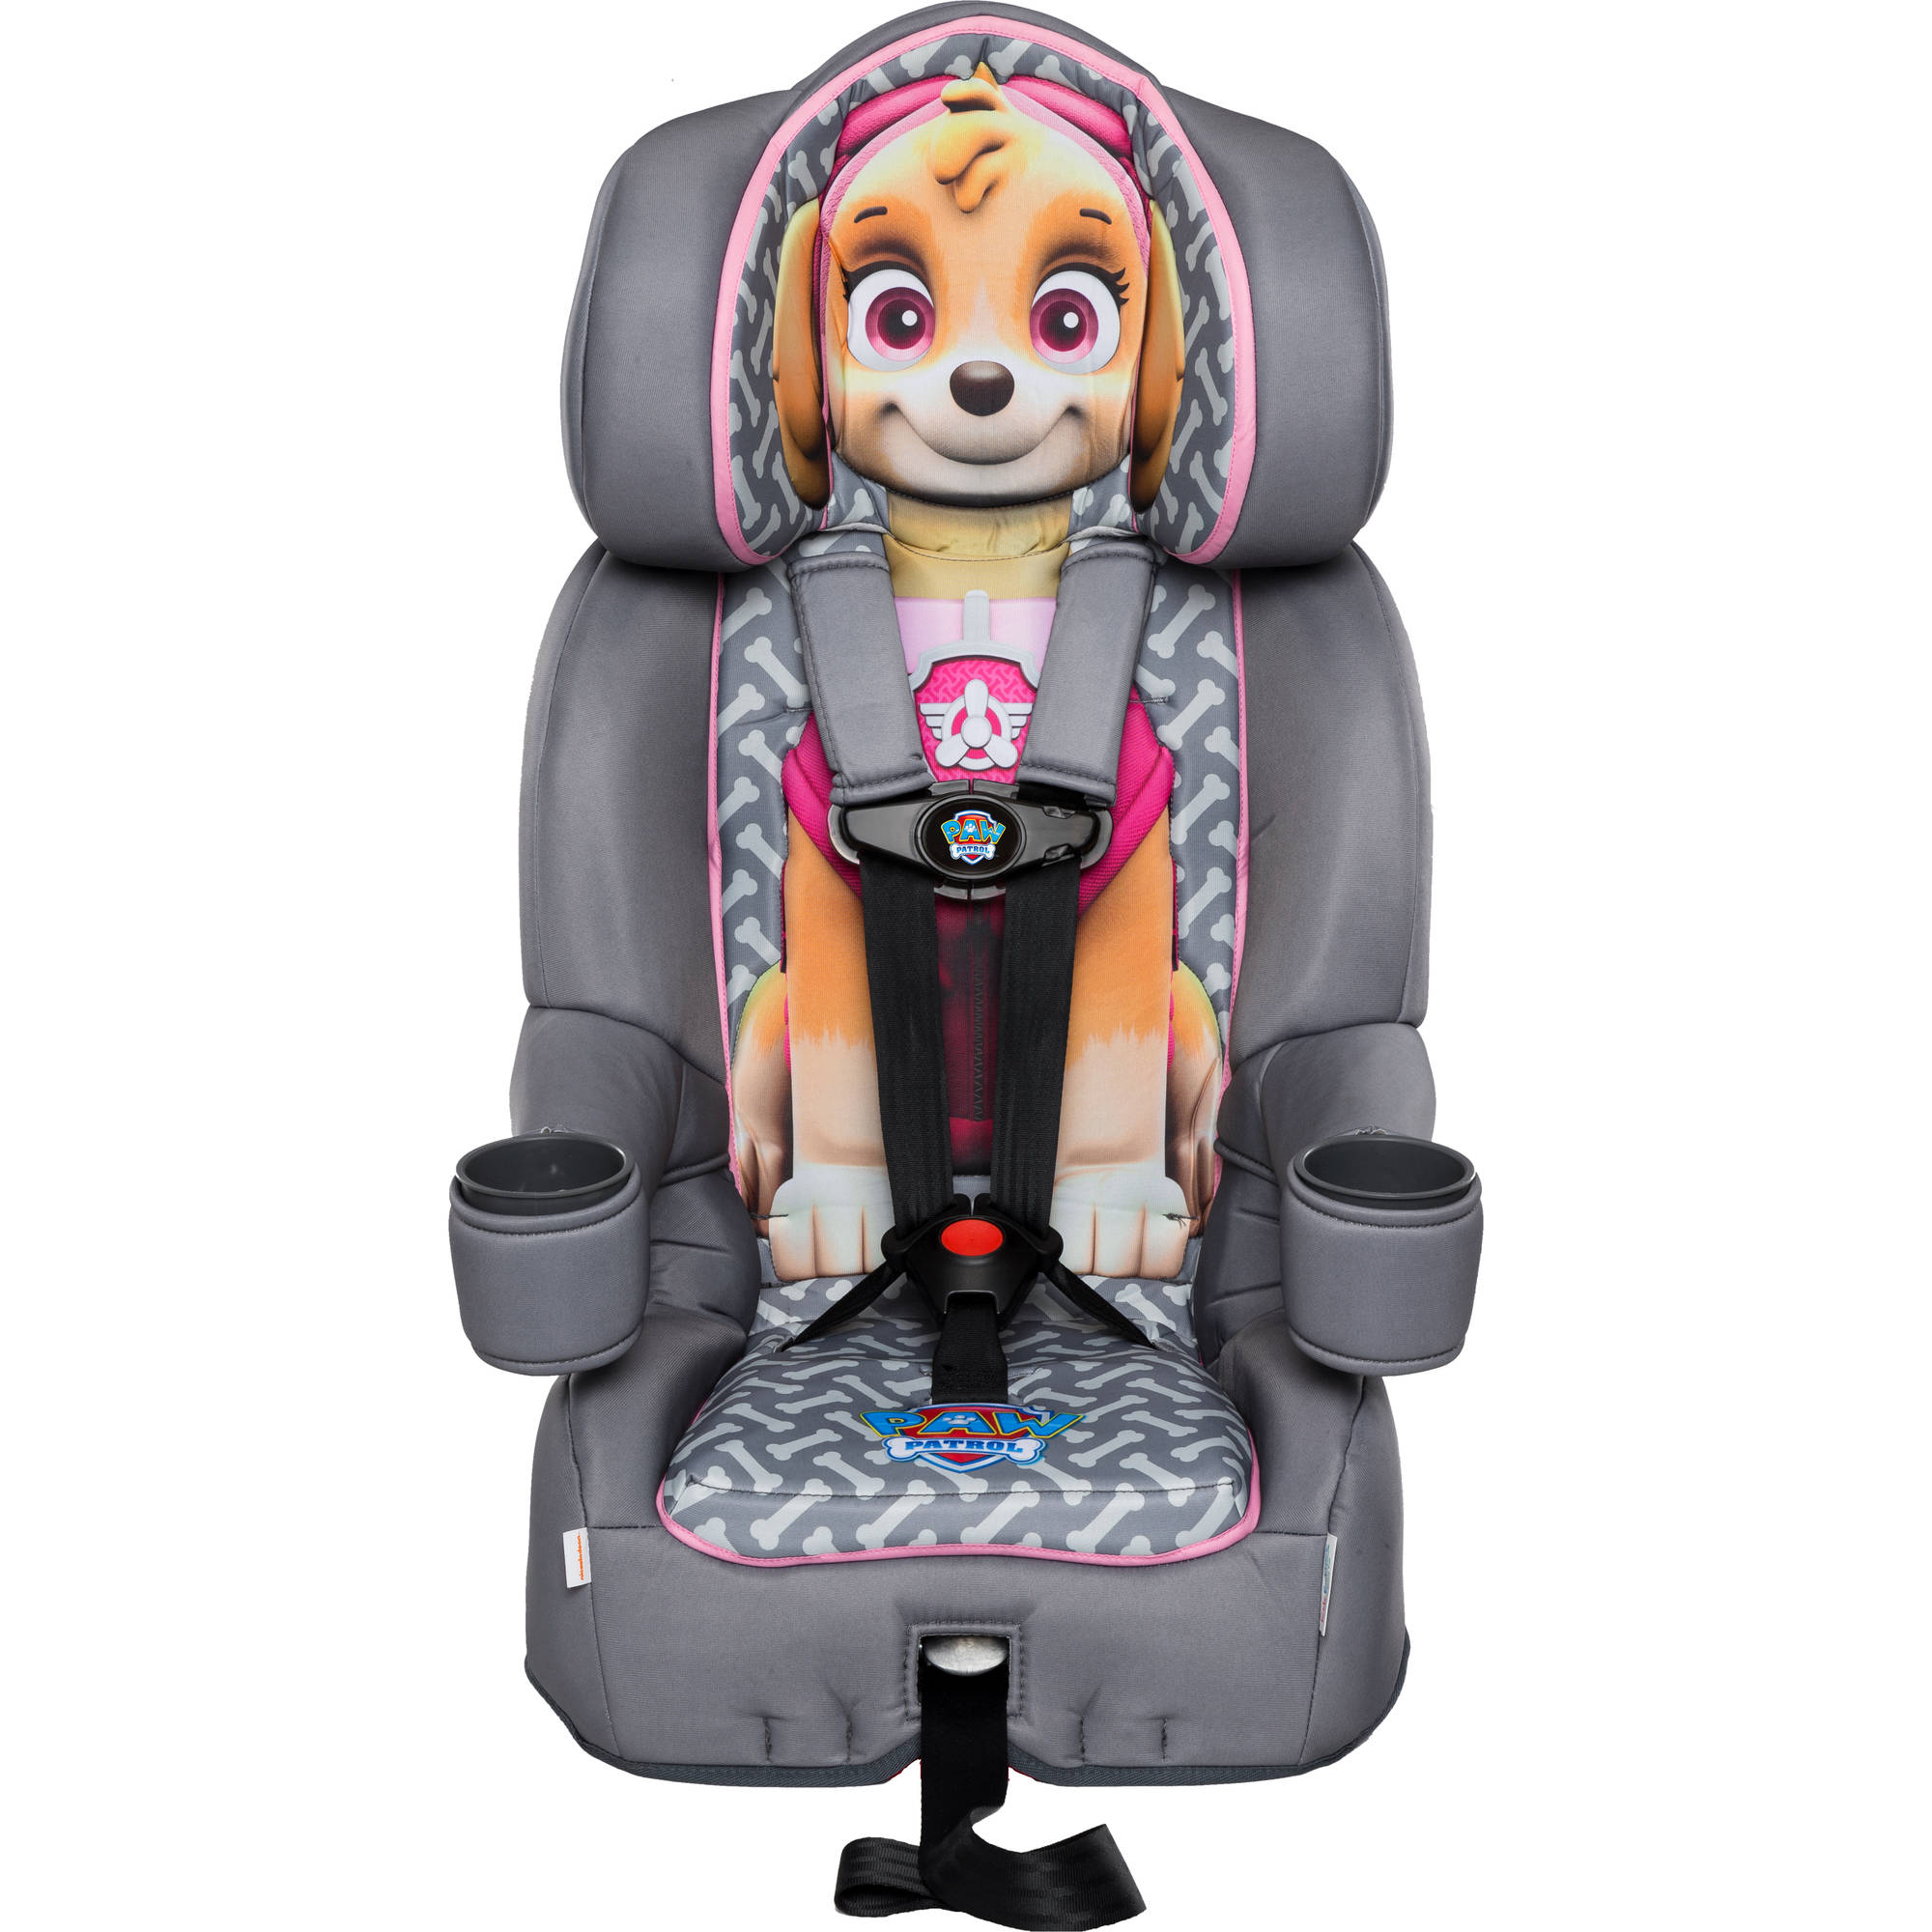 Nickelodeon KidsEmbrace Combination Toddler Harness Booster Car Seat, Paw Patrol Skye